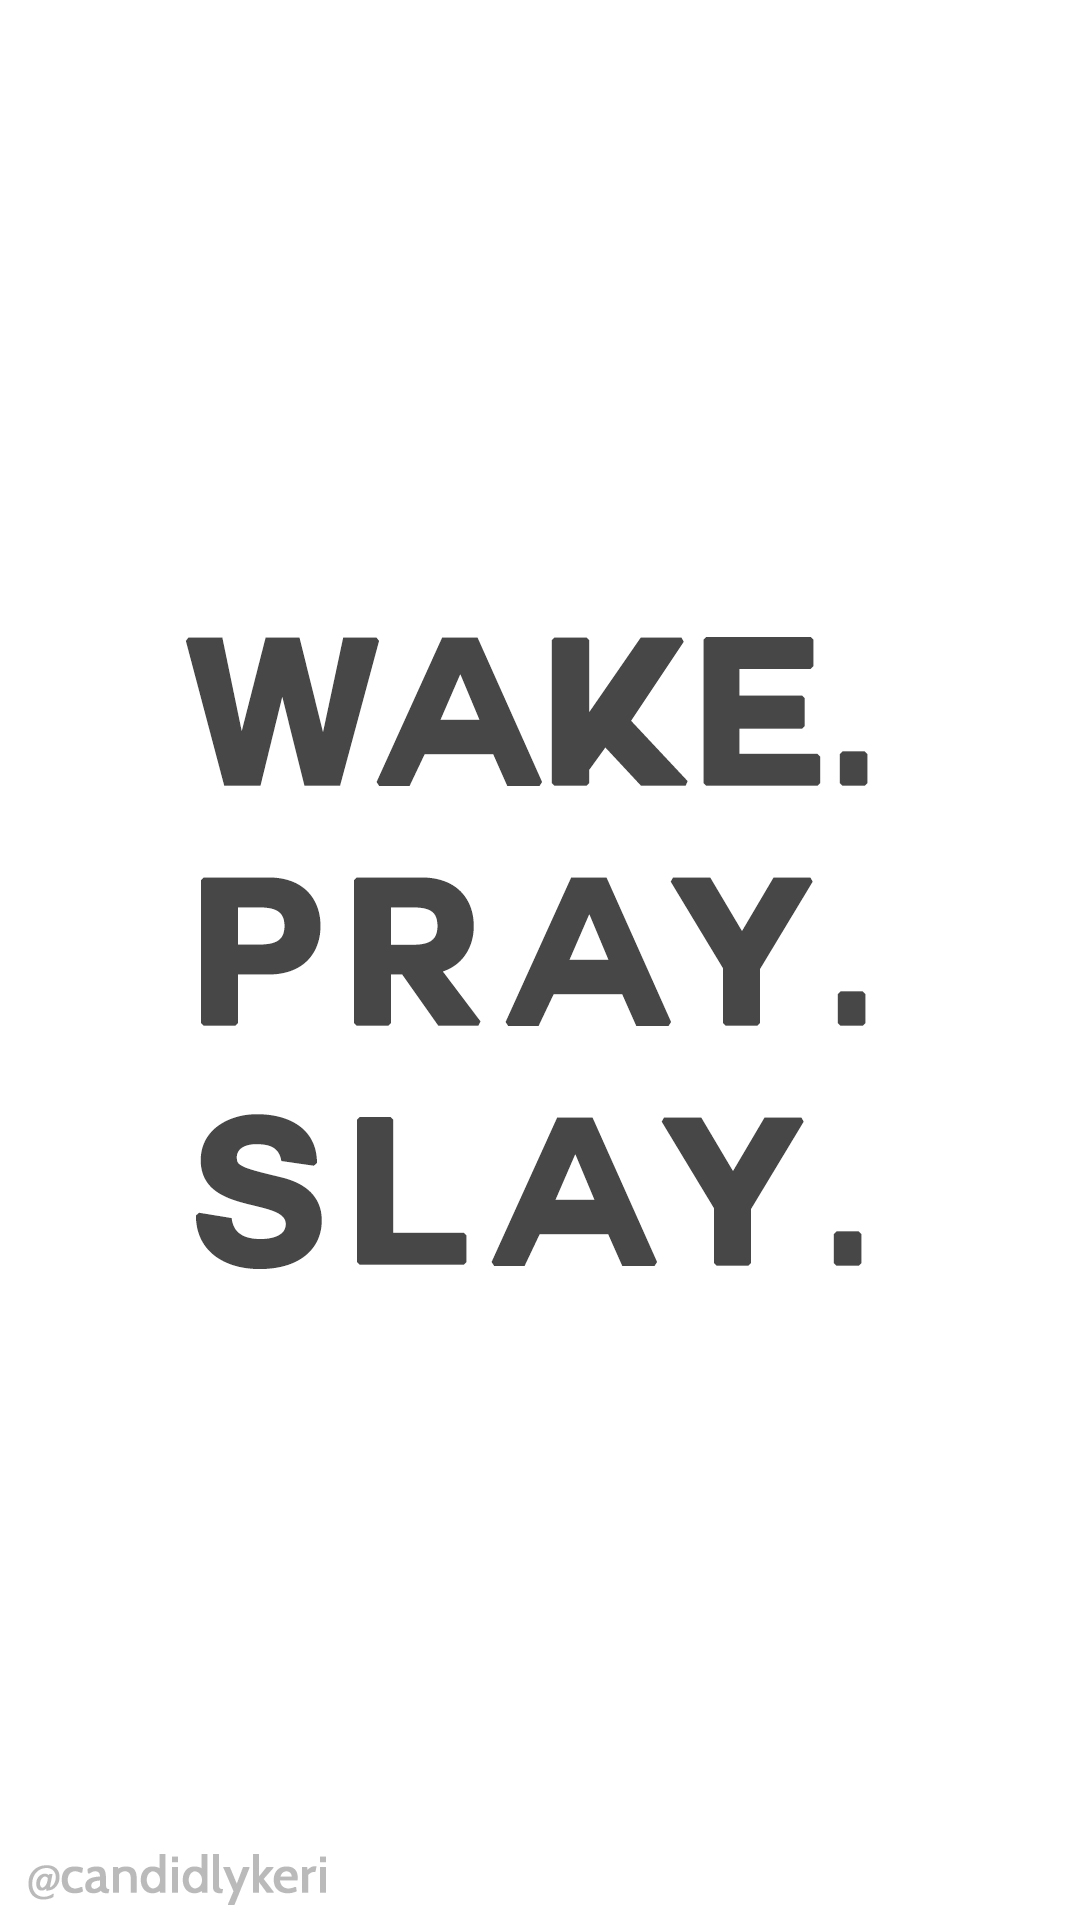 Wake-Pray-Slay-quote-motivation-background-you-can-download-for-free-on-the-blog-For-any-wallpaper-wpc90010274